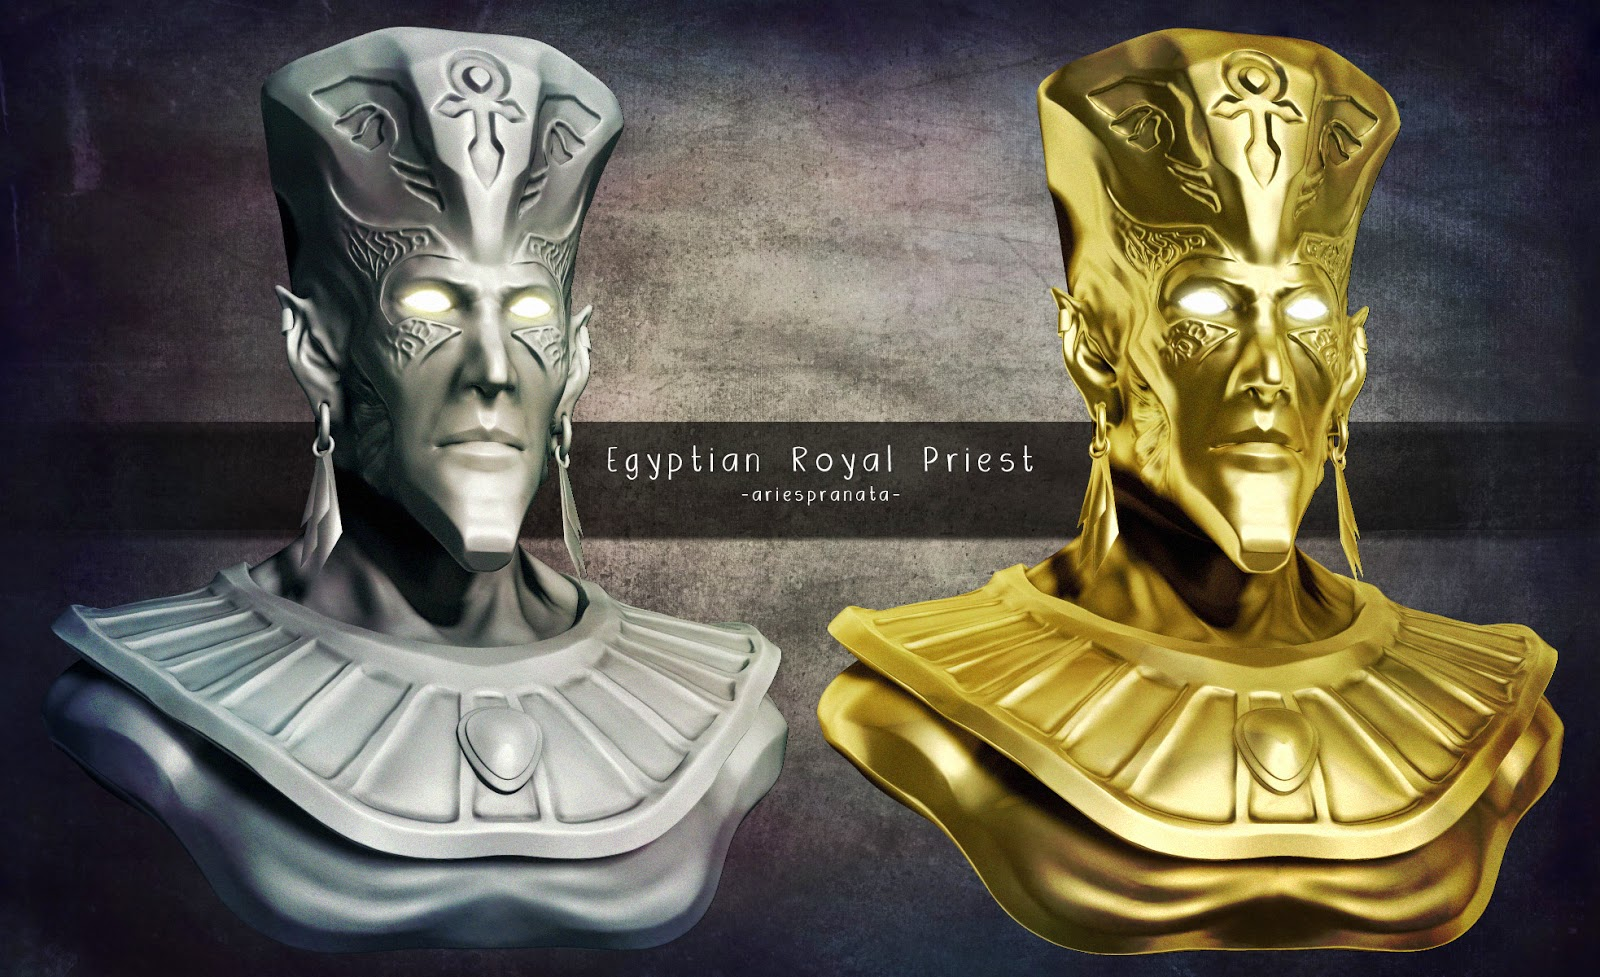 Egyptian Royal Priest Concept